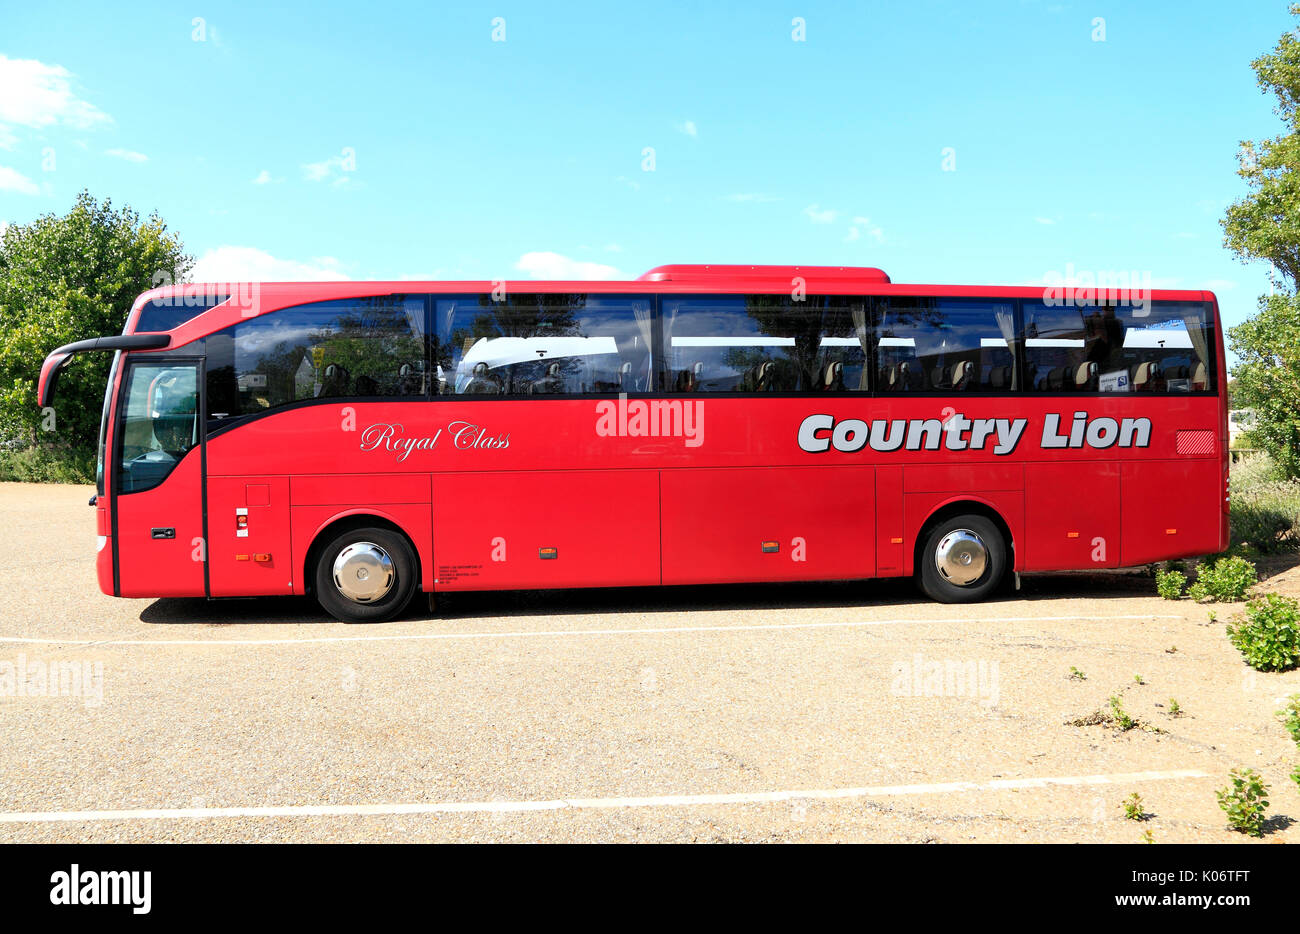 Country Lion, Royal Class, Coaches, coach, Travel, day trip, trips, excursion, excursions, travel company, companies, transport, holidays, England, UK - Stock Image